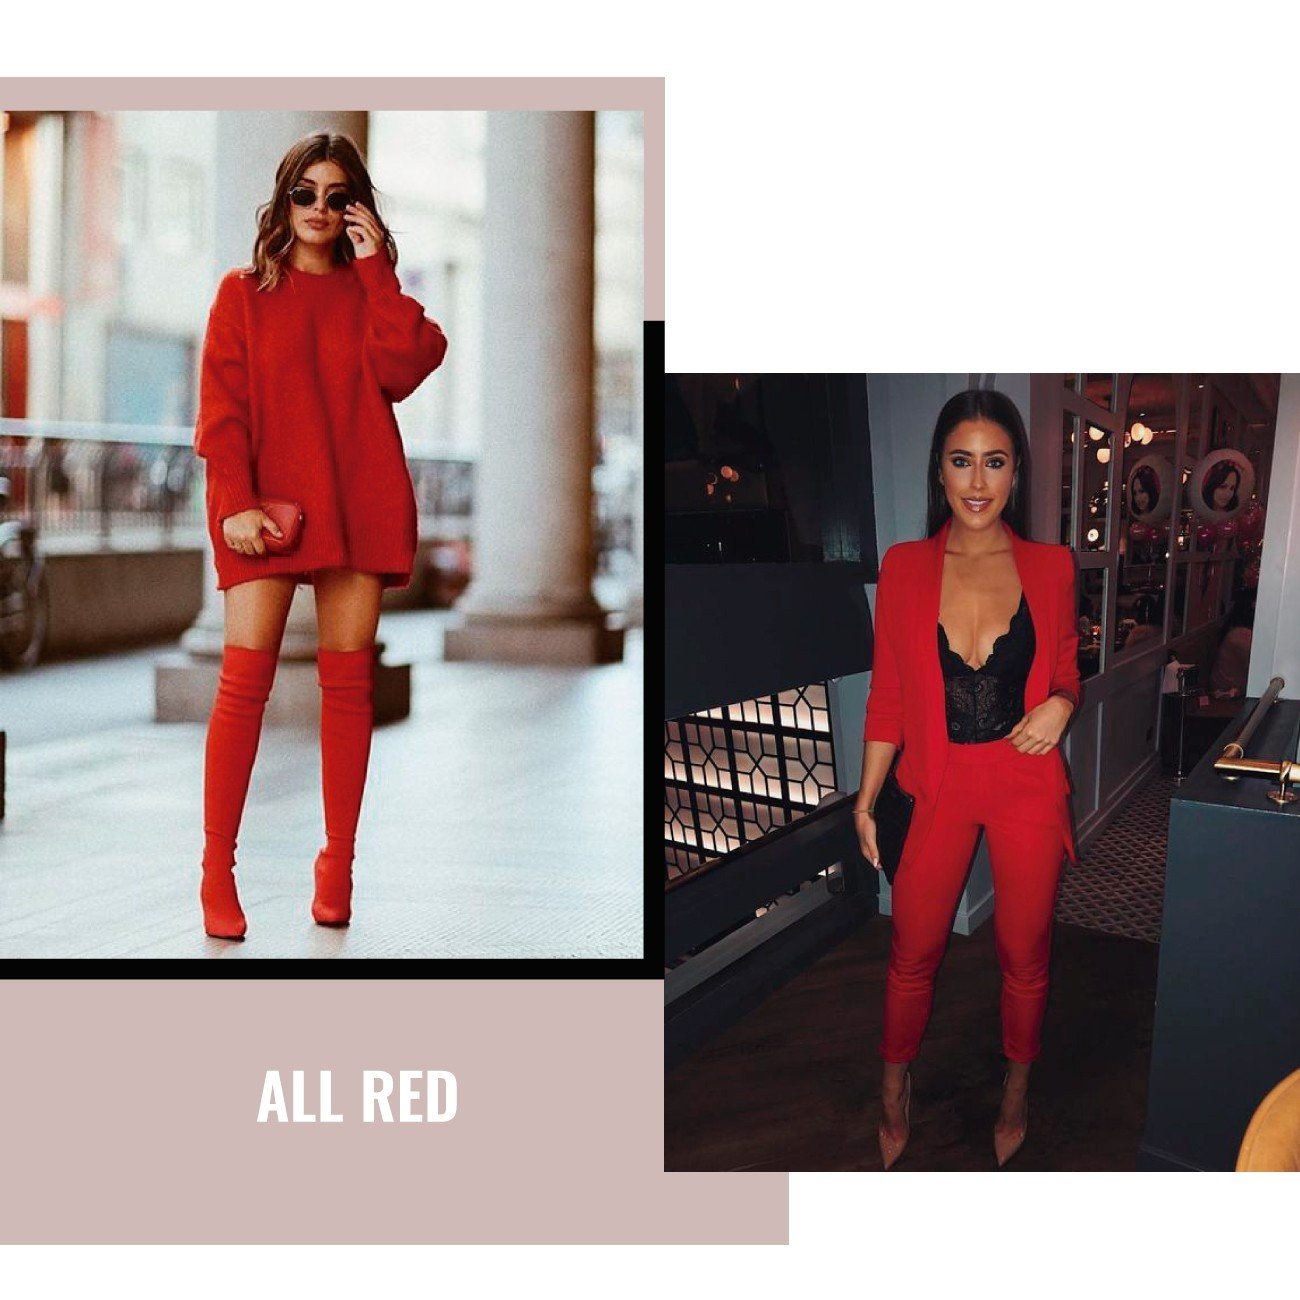 all red looks